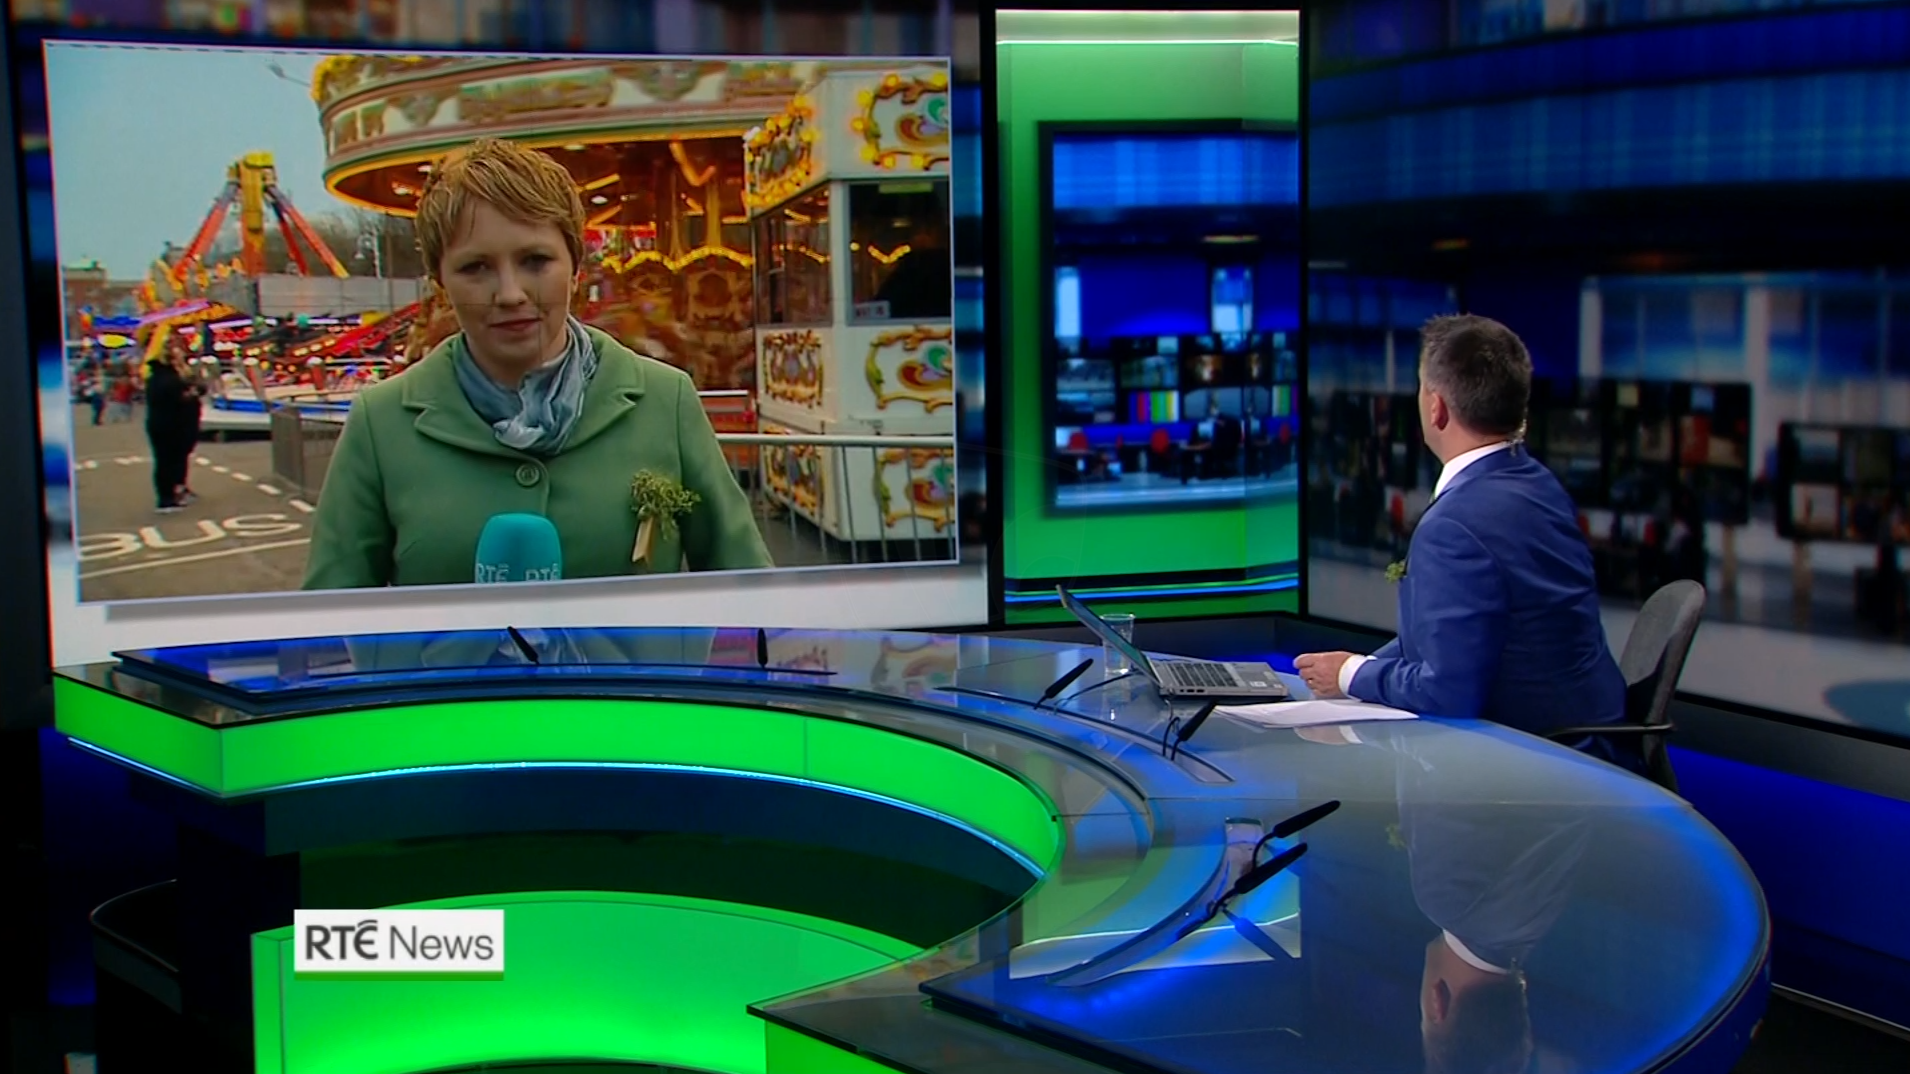 PICTURED: RTÉ News: Six-One presentation for St Patrick's Day. Presenter: Aengus MacGrianna. Reporter: Sinead Crowley.